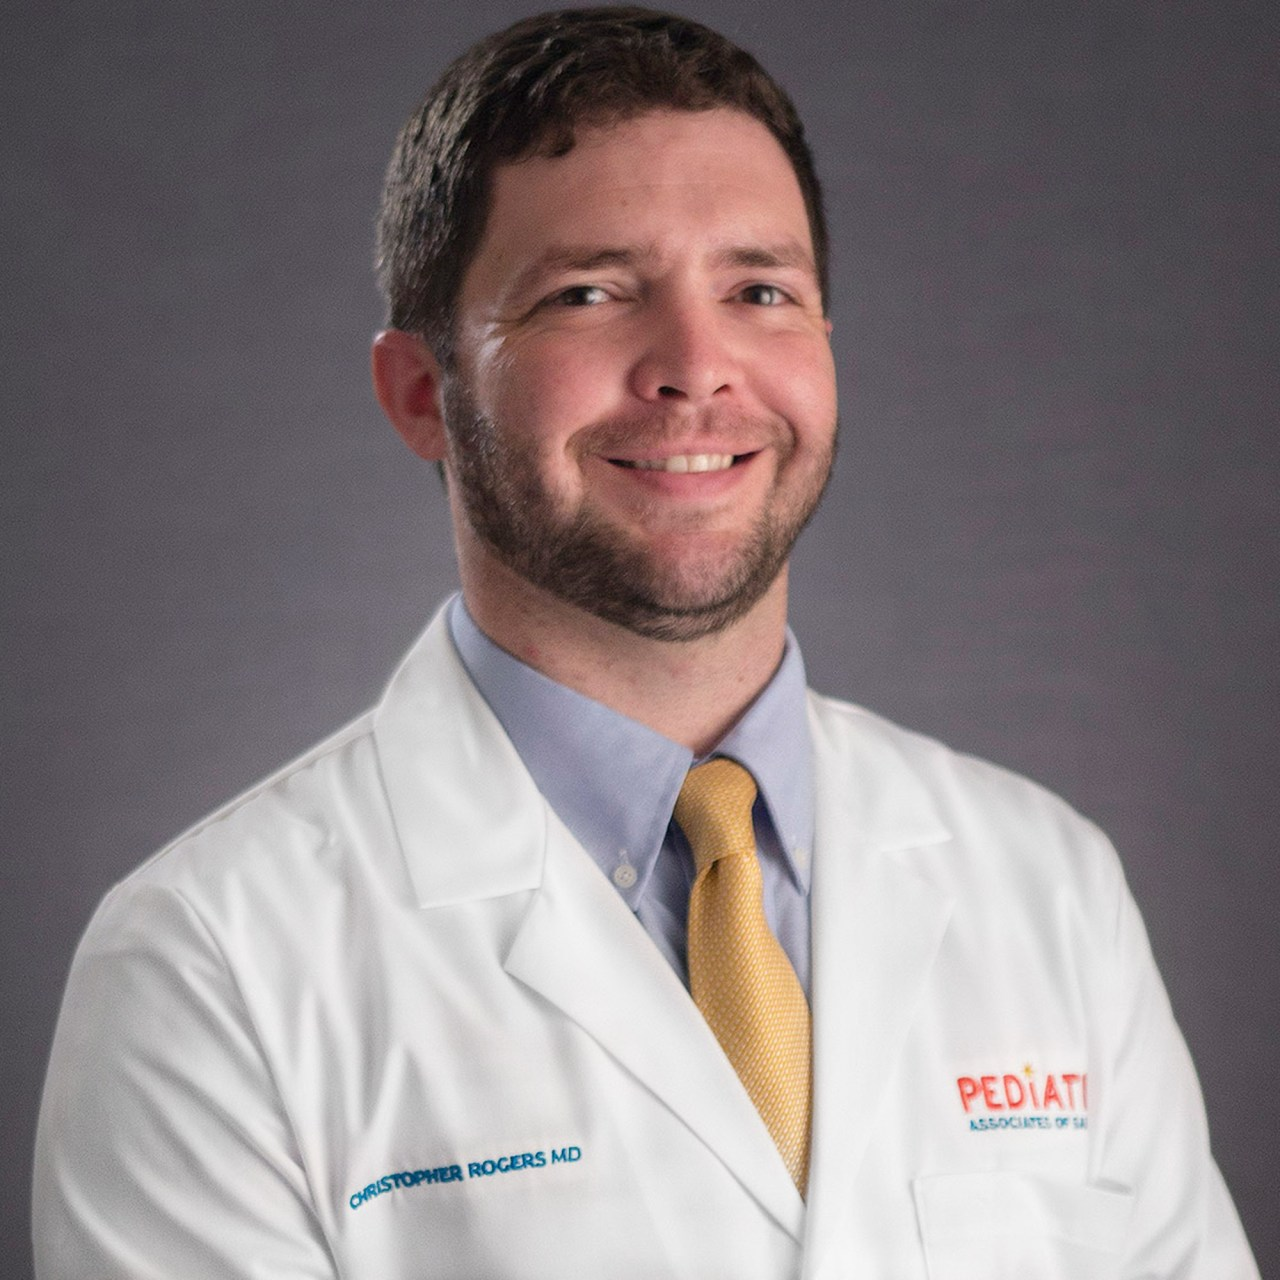 Christopher Rogers, MD